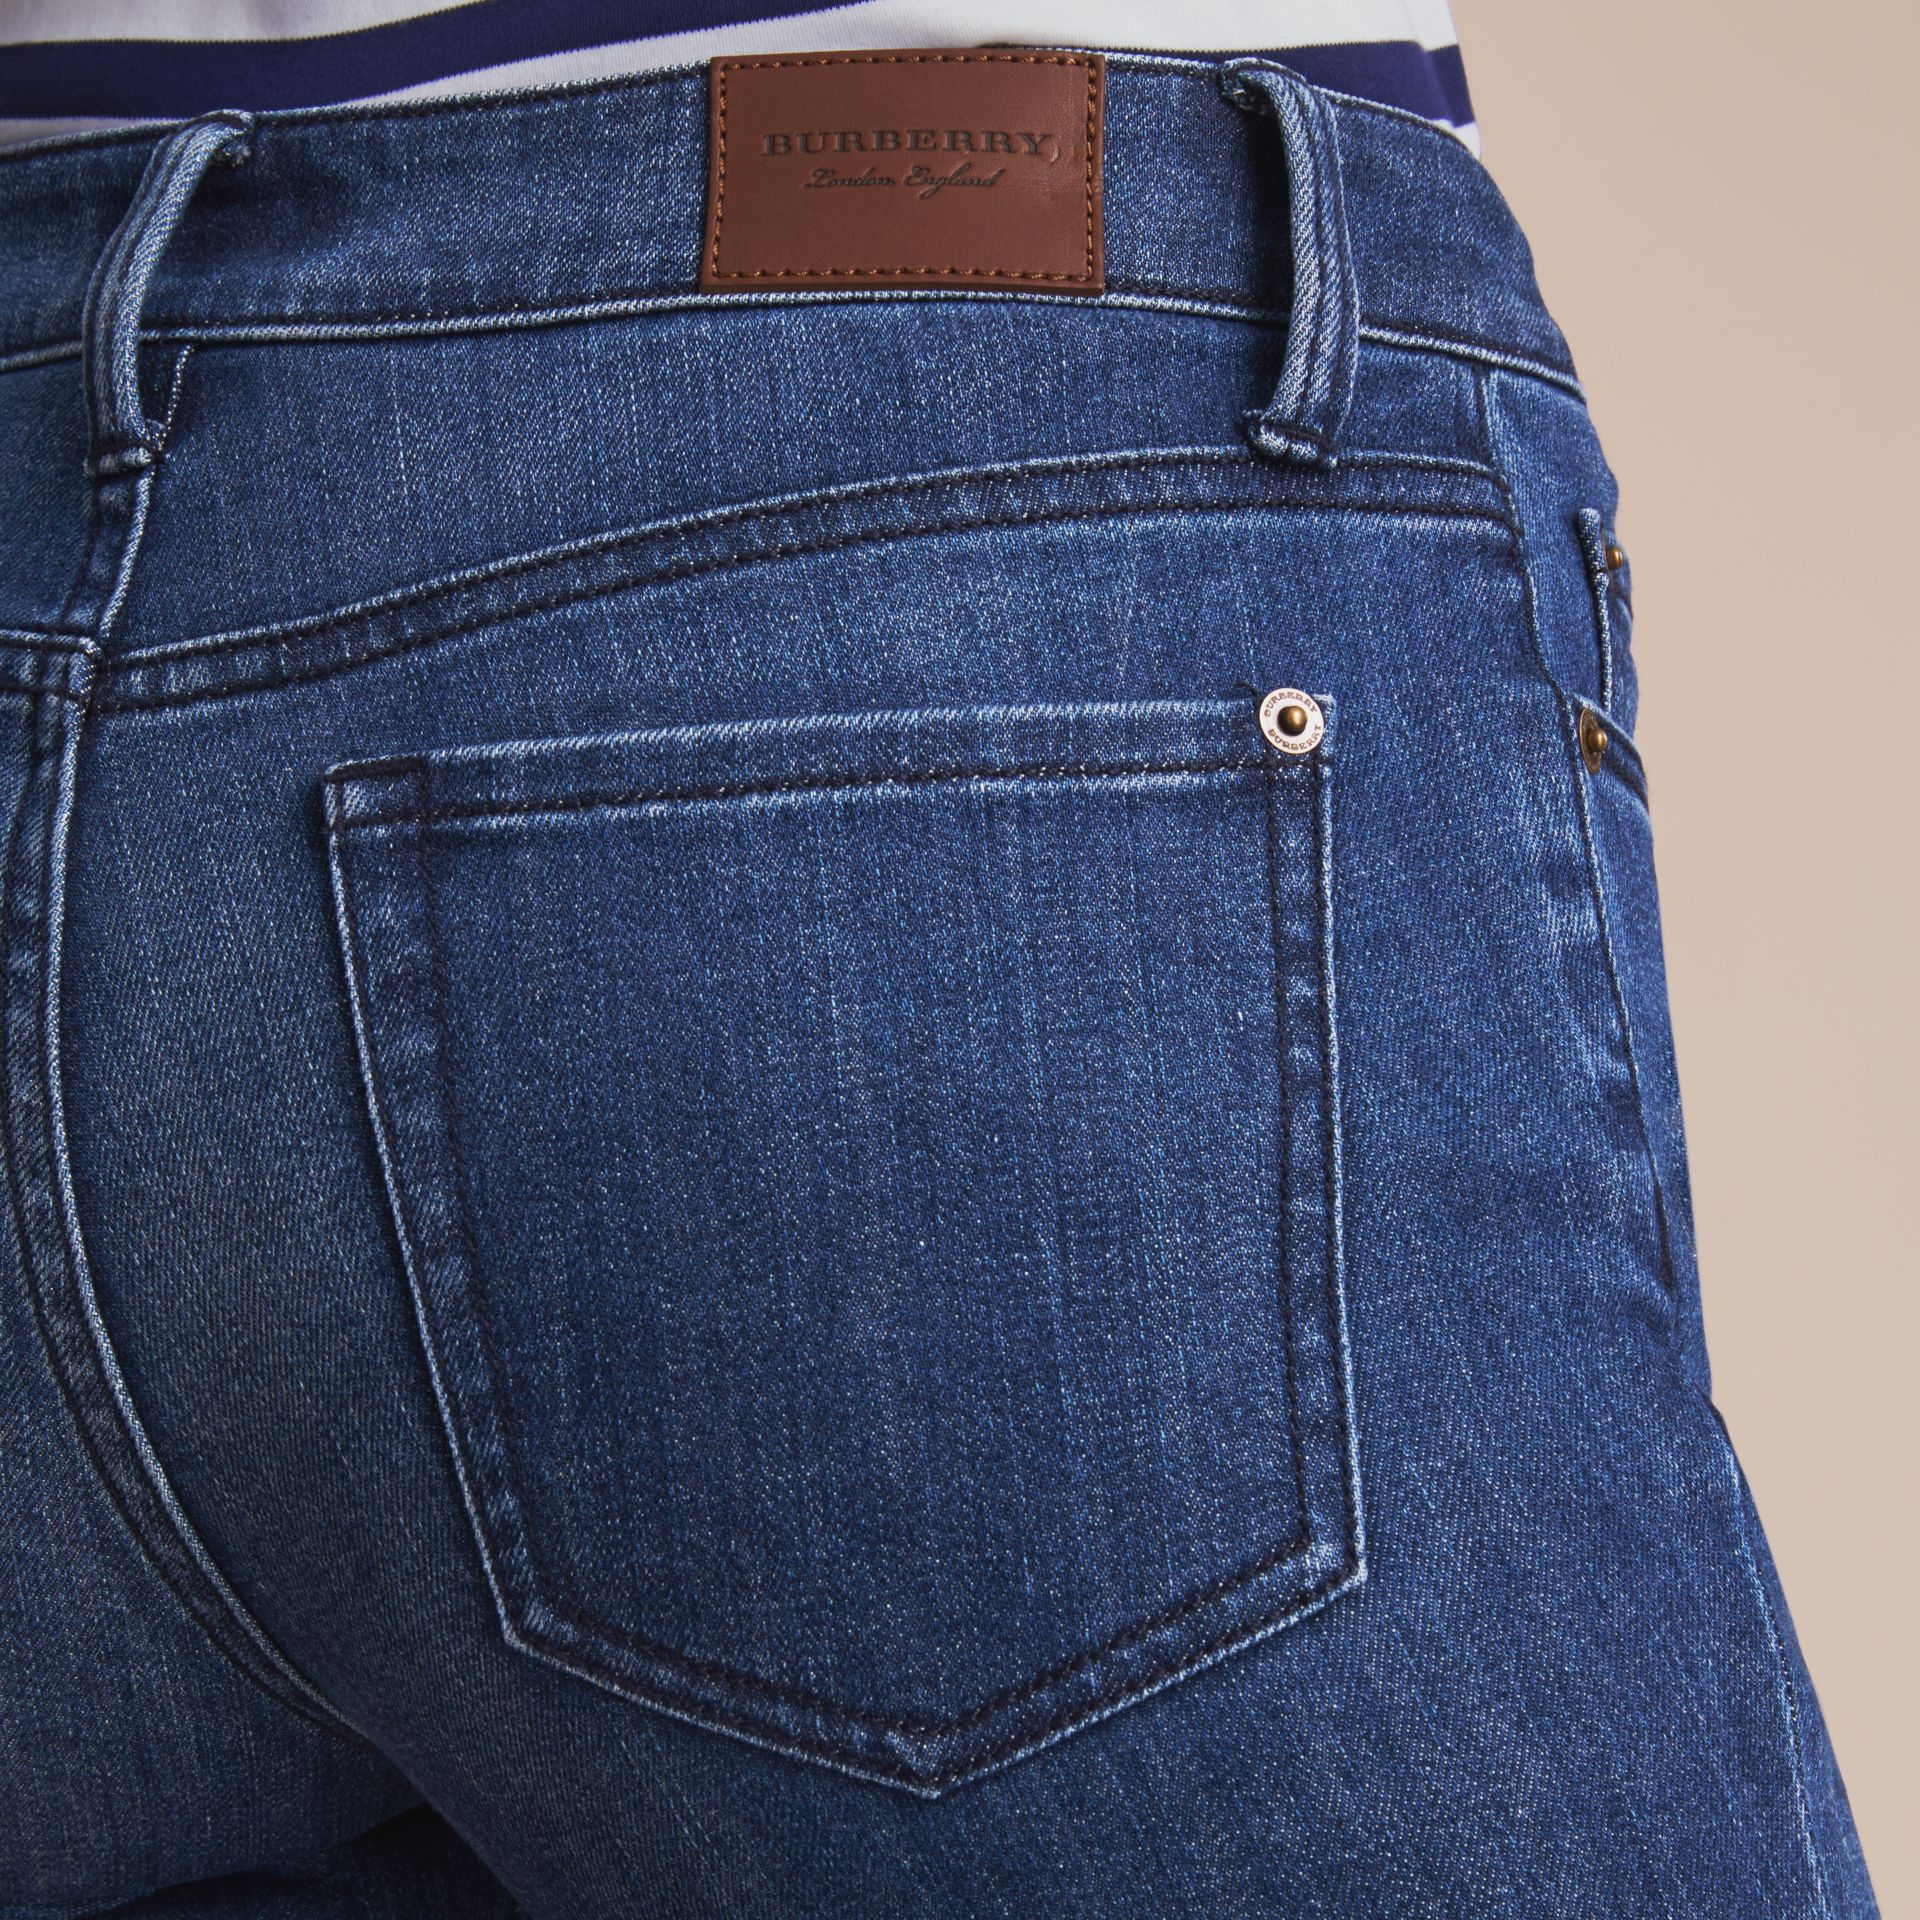 Skinny Fit Seam Detail Stretch Japanese Denim Jeans in Indigo - Women | Burberry - gallery image 5